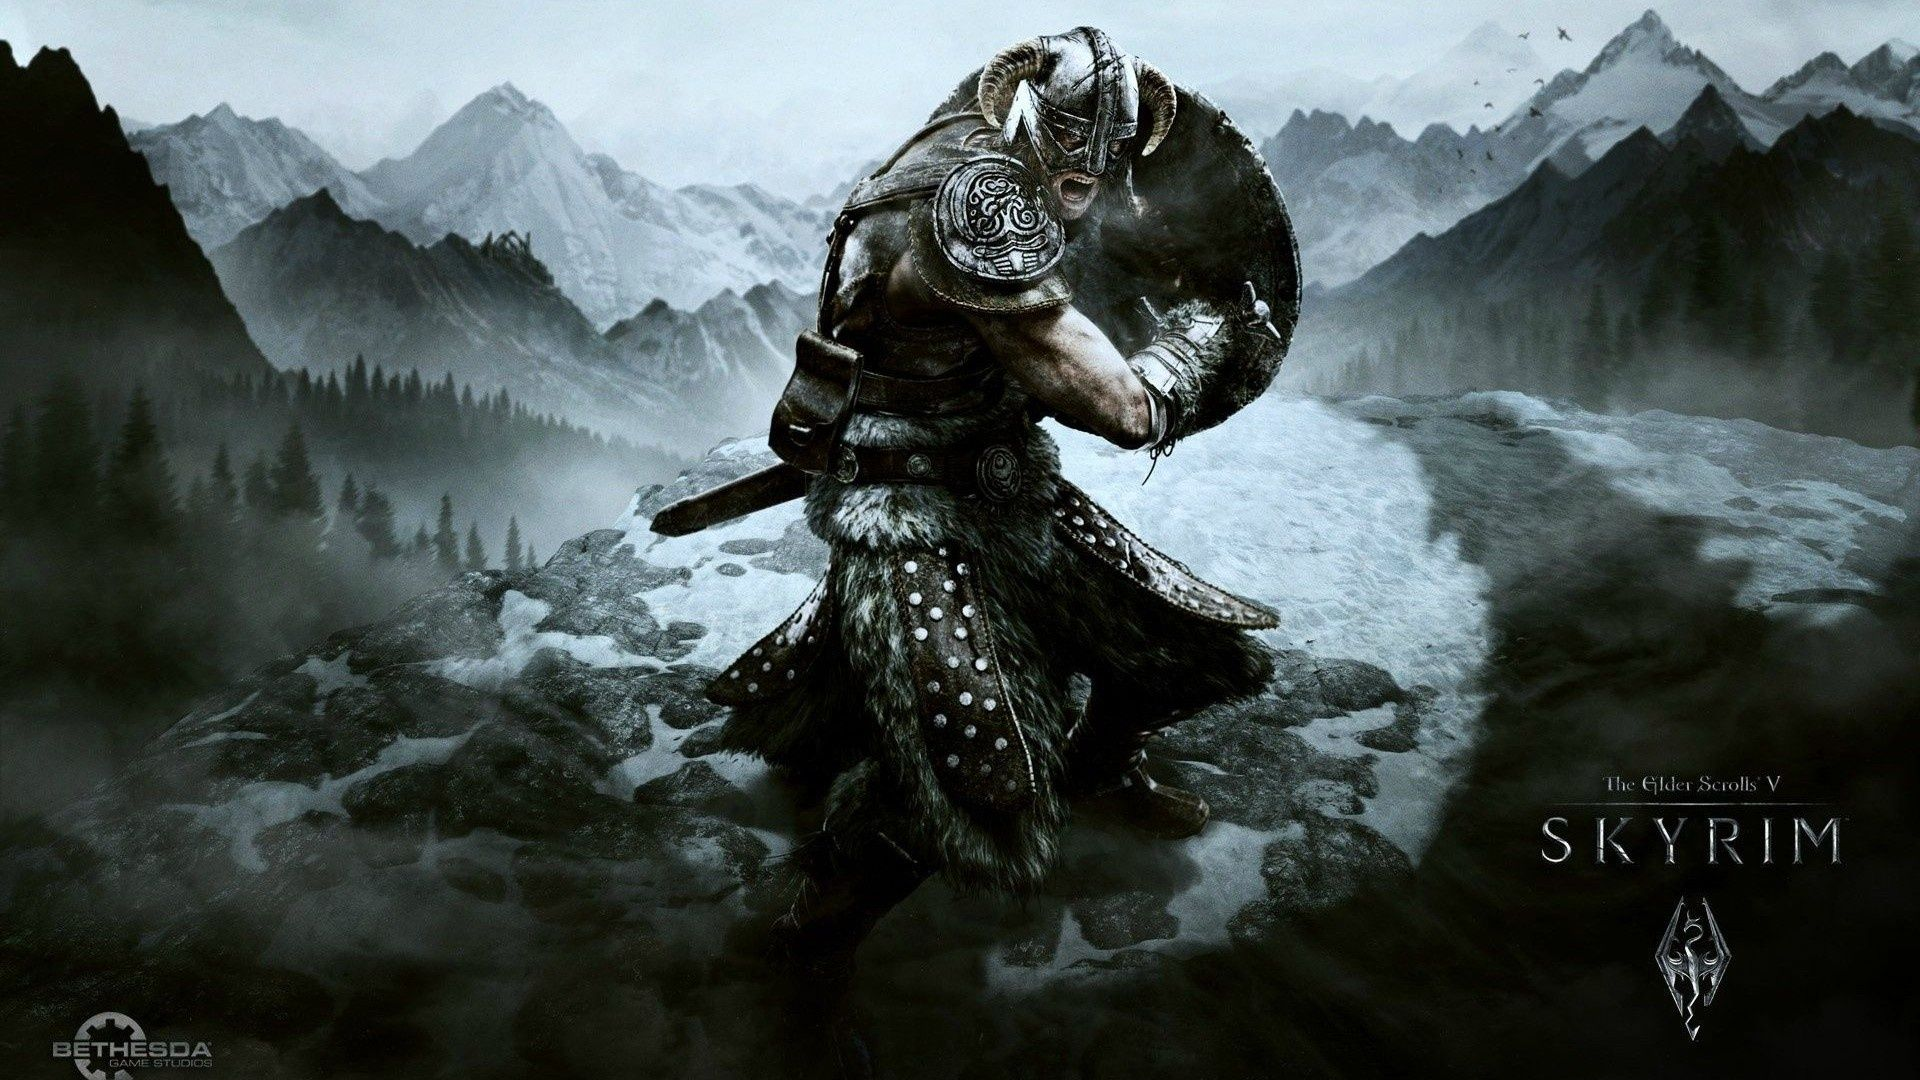 Collection of Cool Gamer Desktop Backgrounds on HDWallpapers